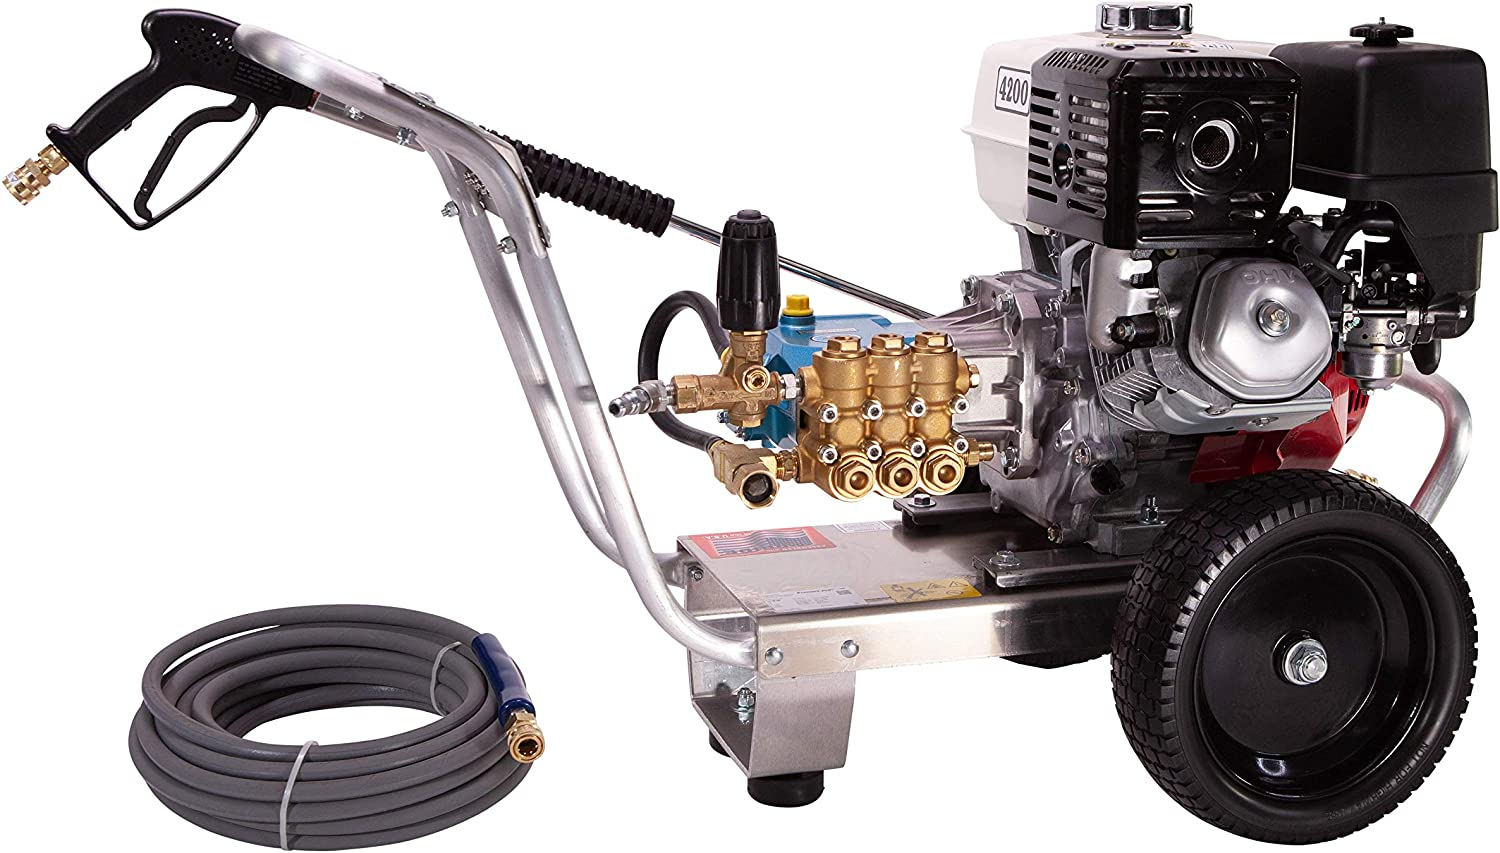 Pressure Pro E4040HC Heavy Duty Professional 4,000 PSI 4.0 GPM Honda Gas Powered Pressure Washer With CAT Pump